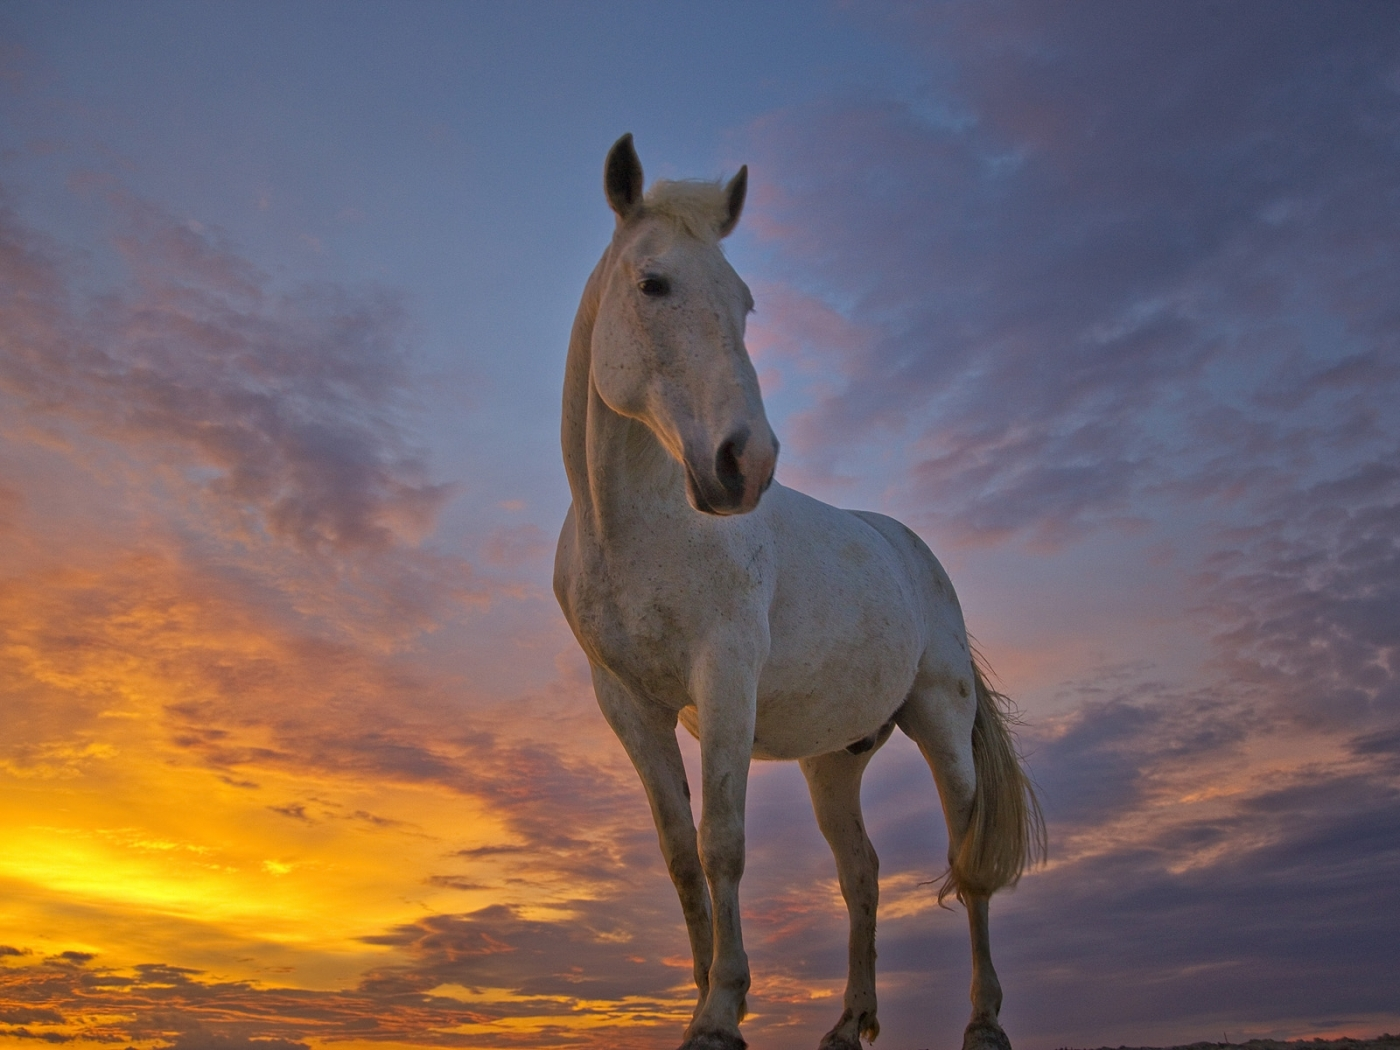 40691 download wallpaper Animals, Horses screensavers and pictures for free